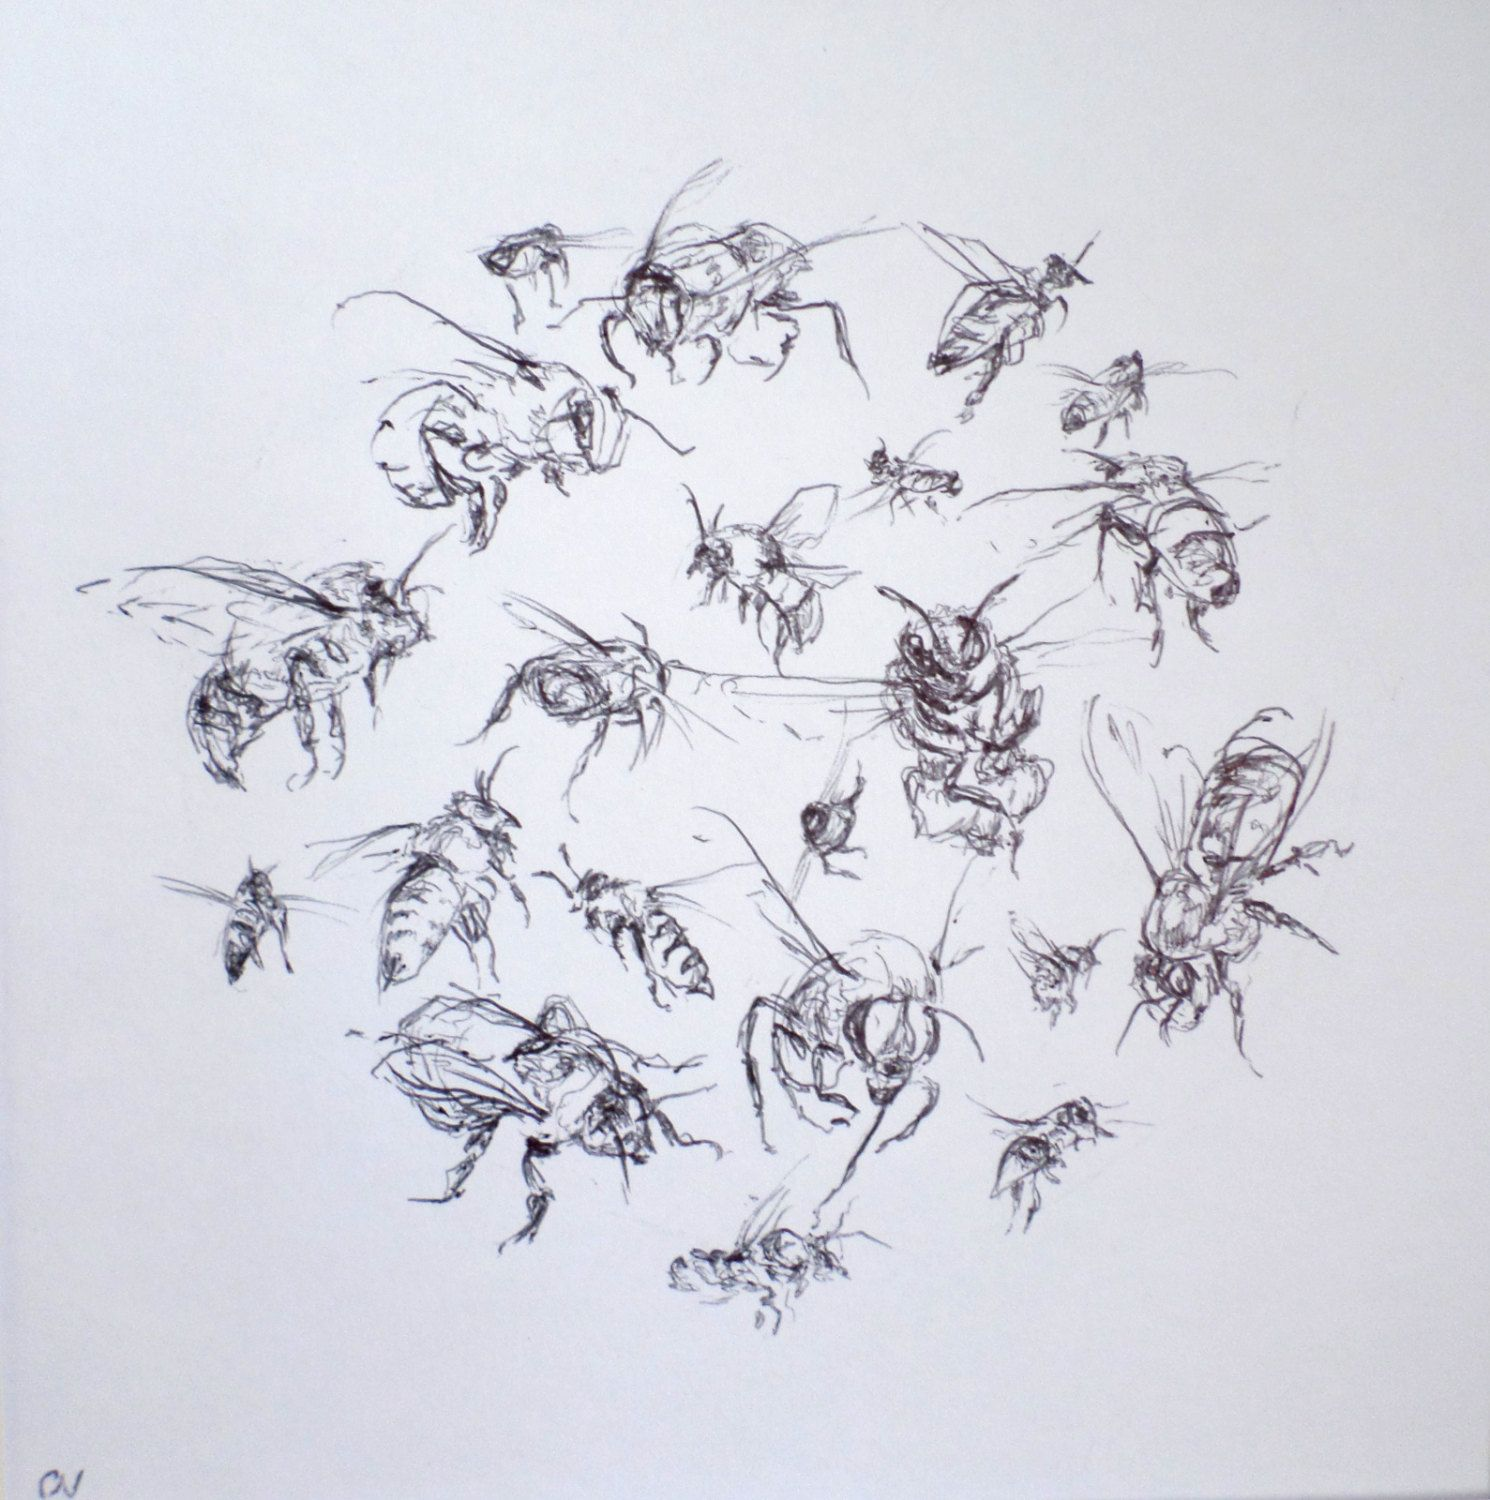 Bee Art Original Honey Bees Bumble Black And White In Flight